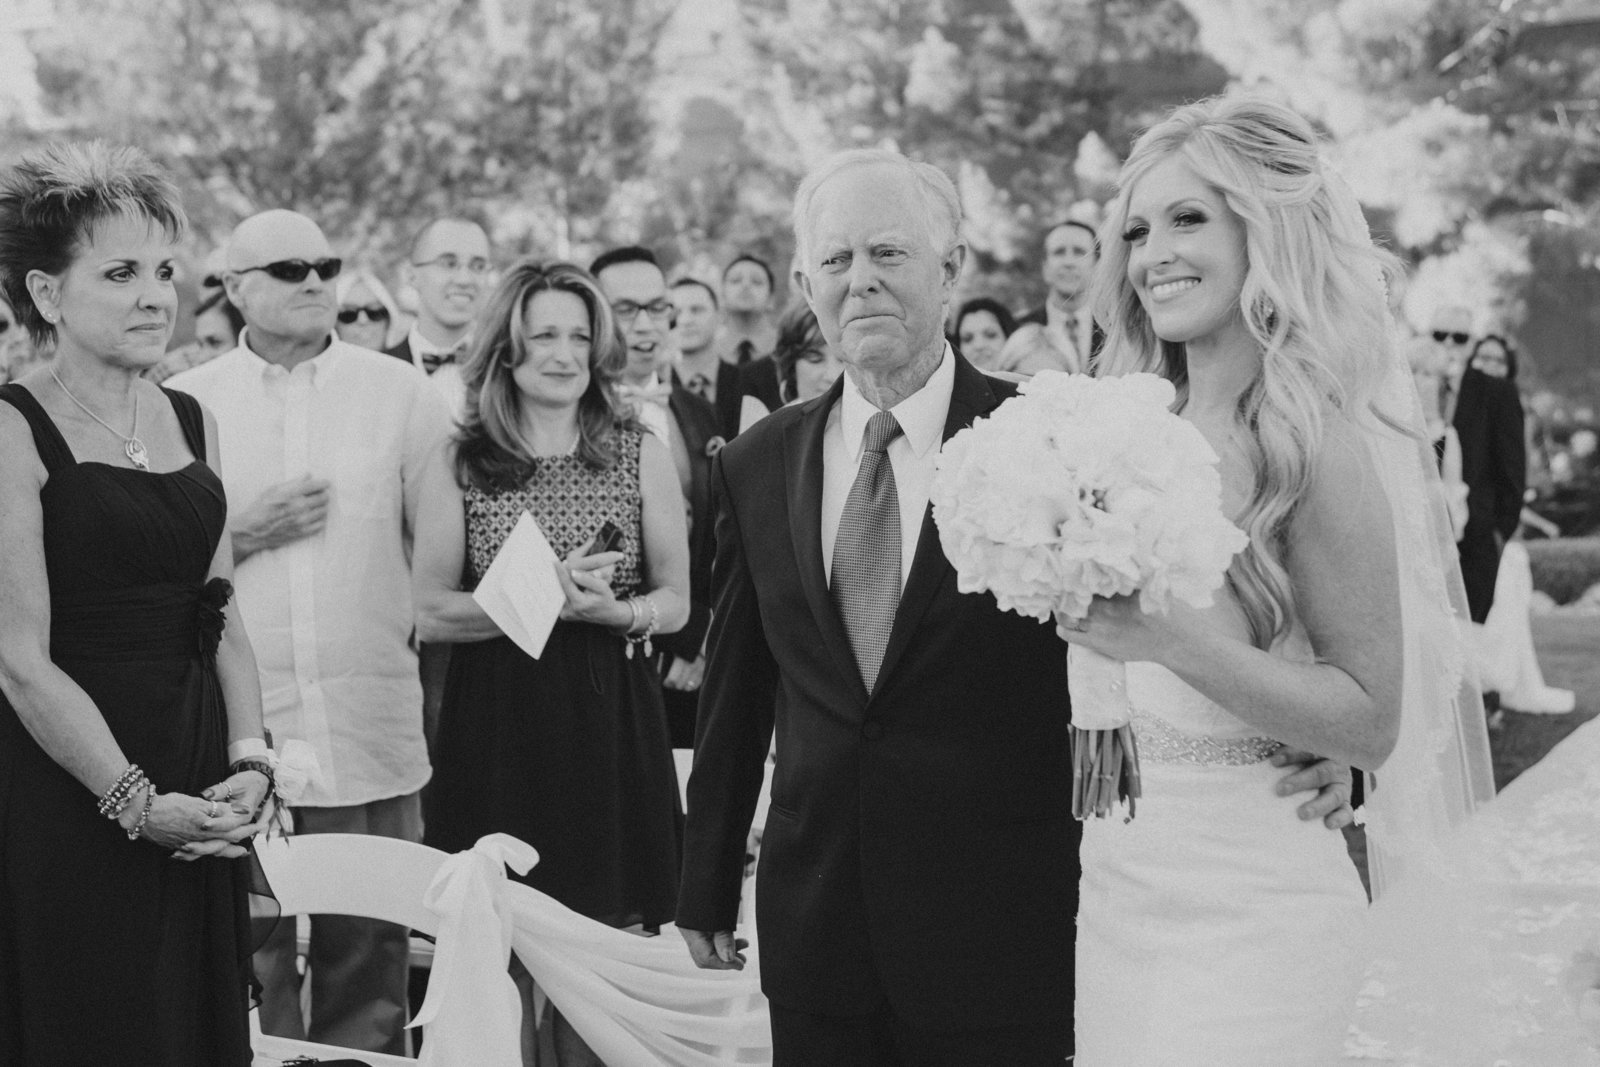 Oregon Wedding Photographer | Susie Moreno Photography